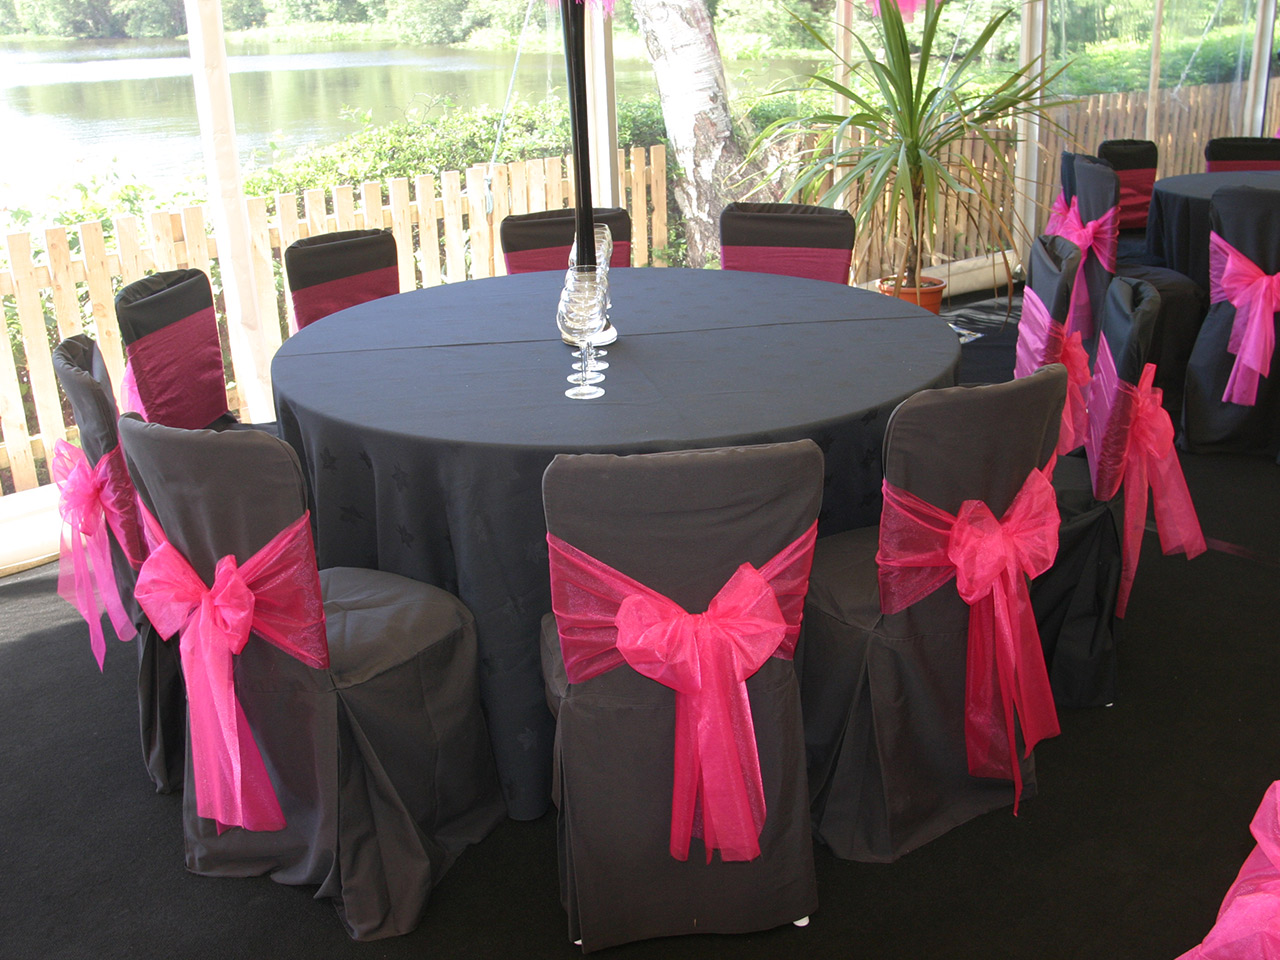 chair cover hire derbyshire massage pads for chairs marquees warwickshire birmingham wales